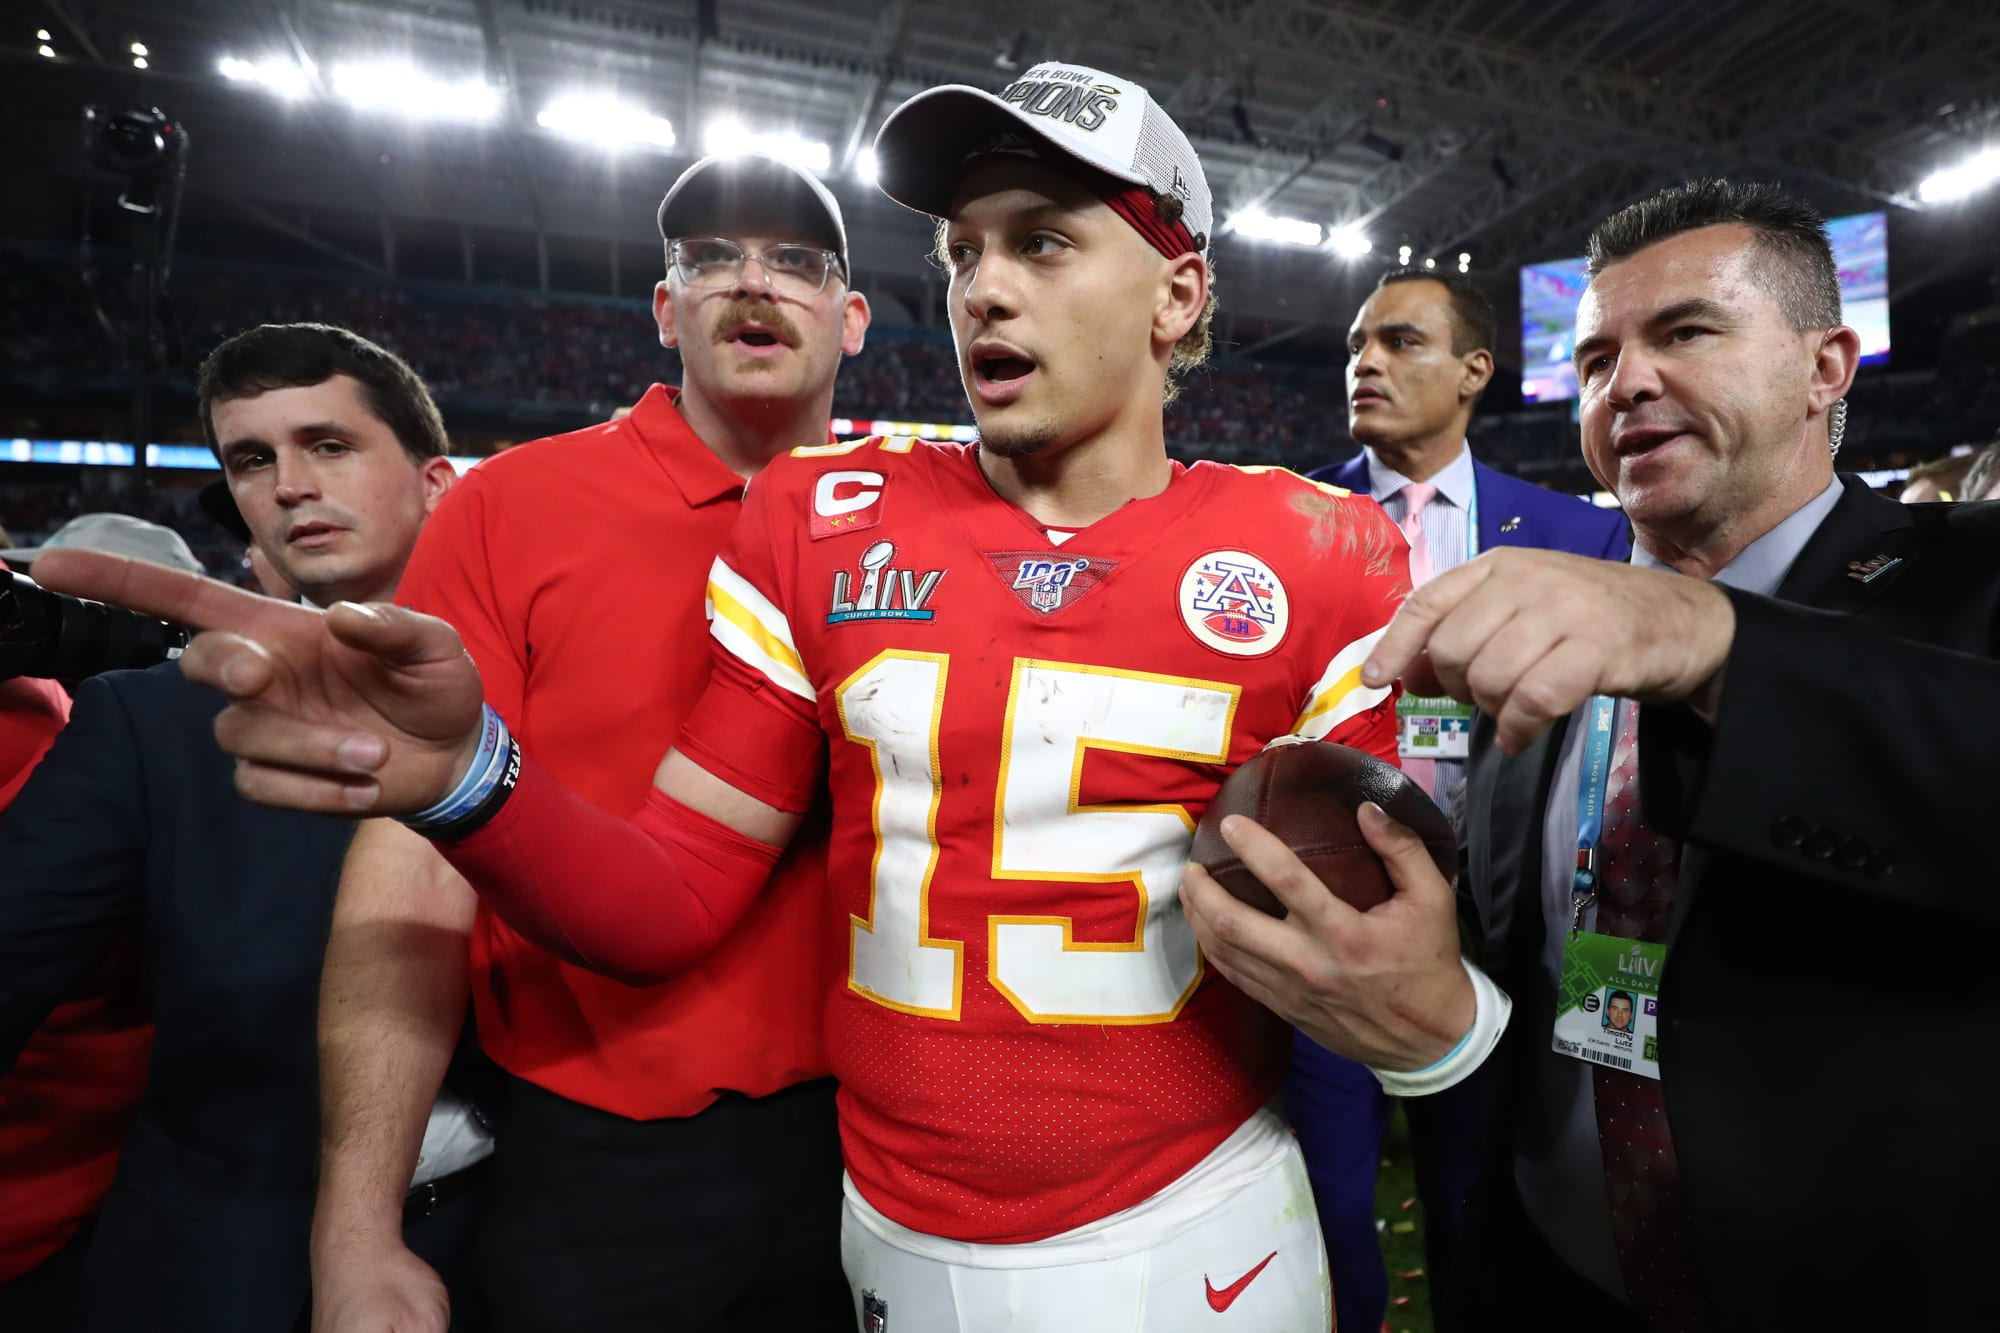 You'll never guess who'll lead the league in passing alongside Patrick Mahomes